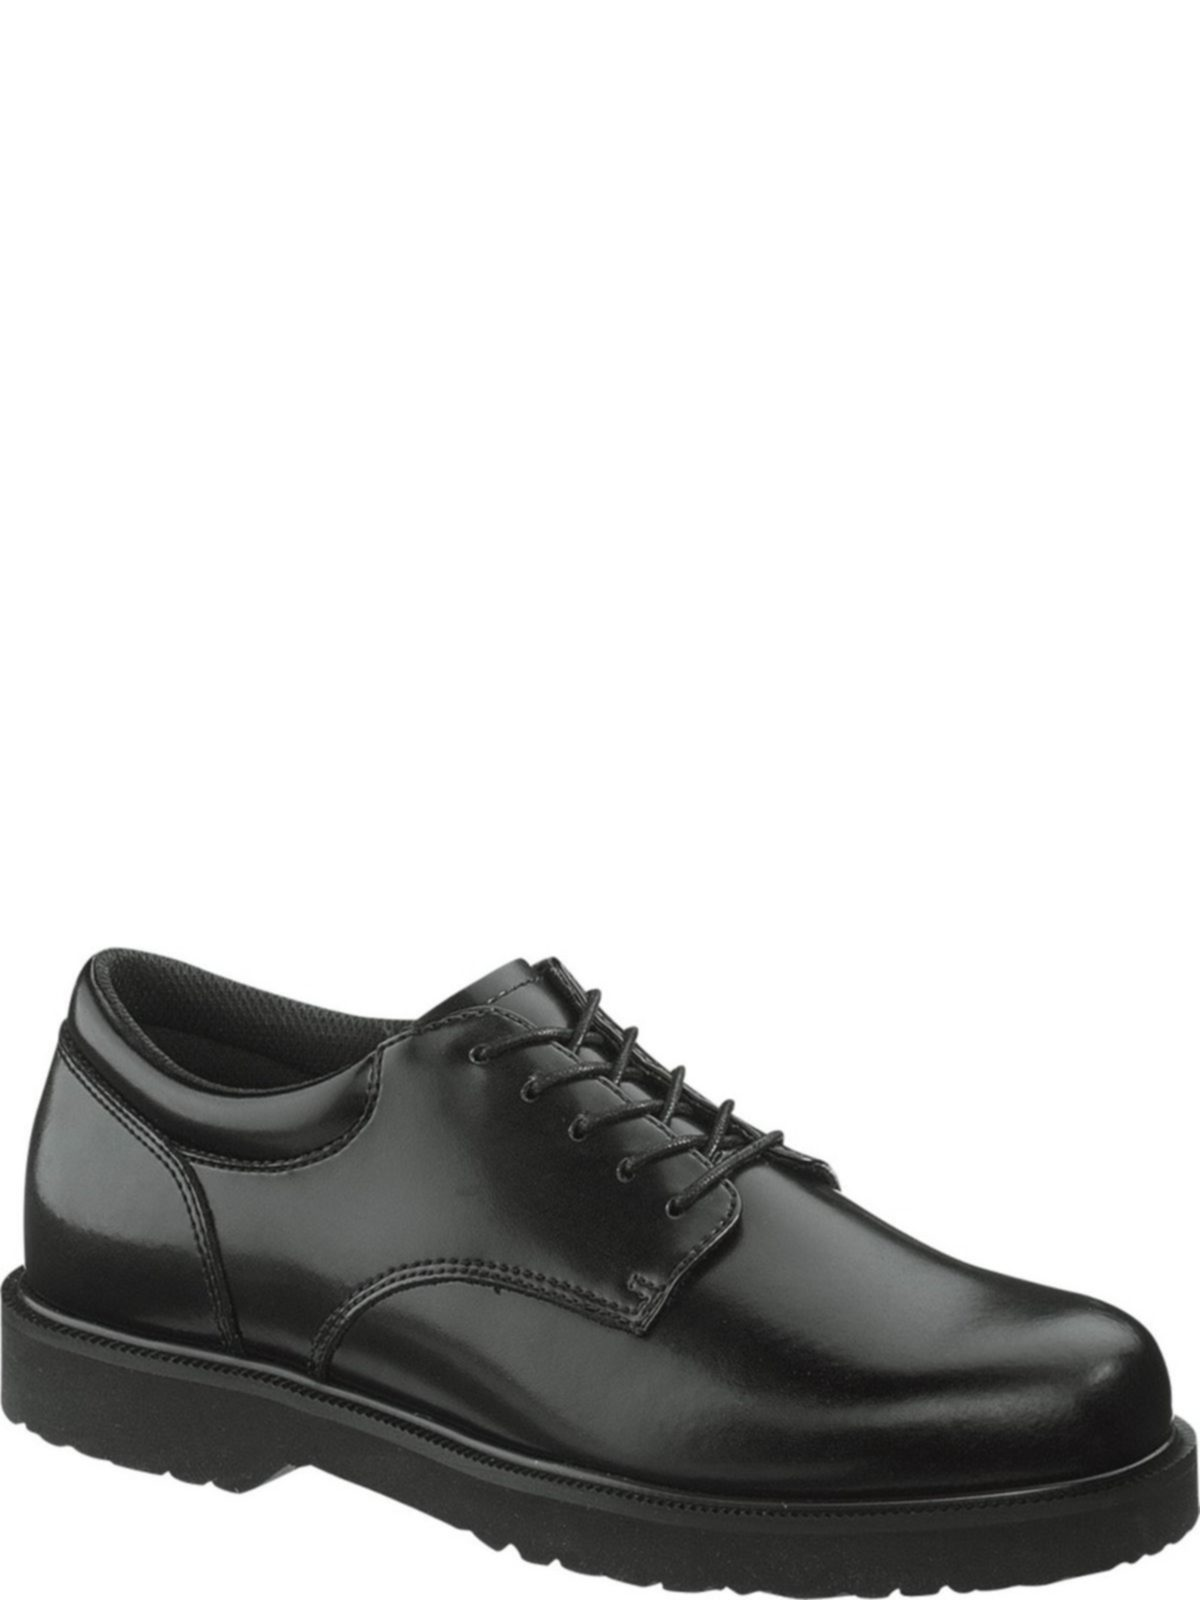 Bootamerica Bates Mens High Shine Duty Oxford Shoe E22233